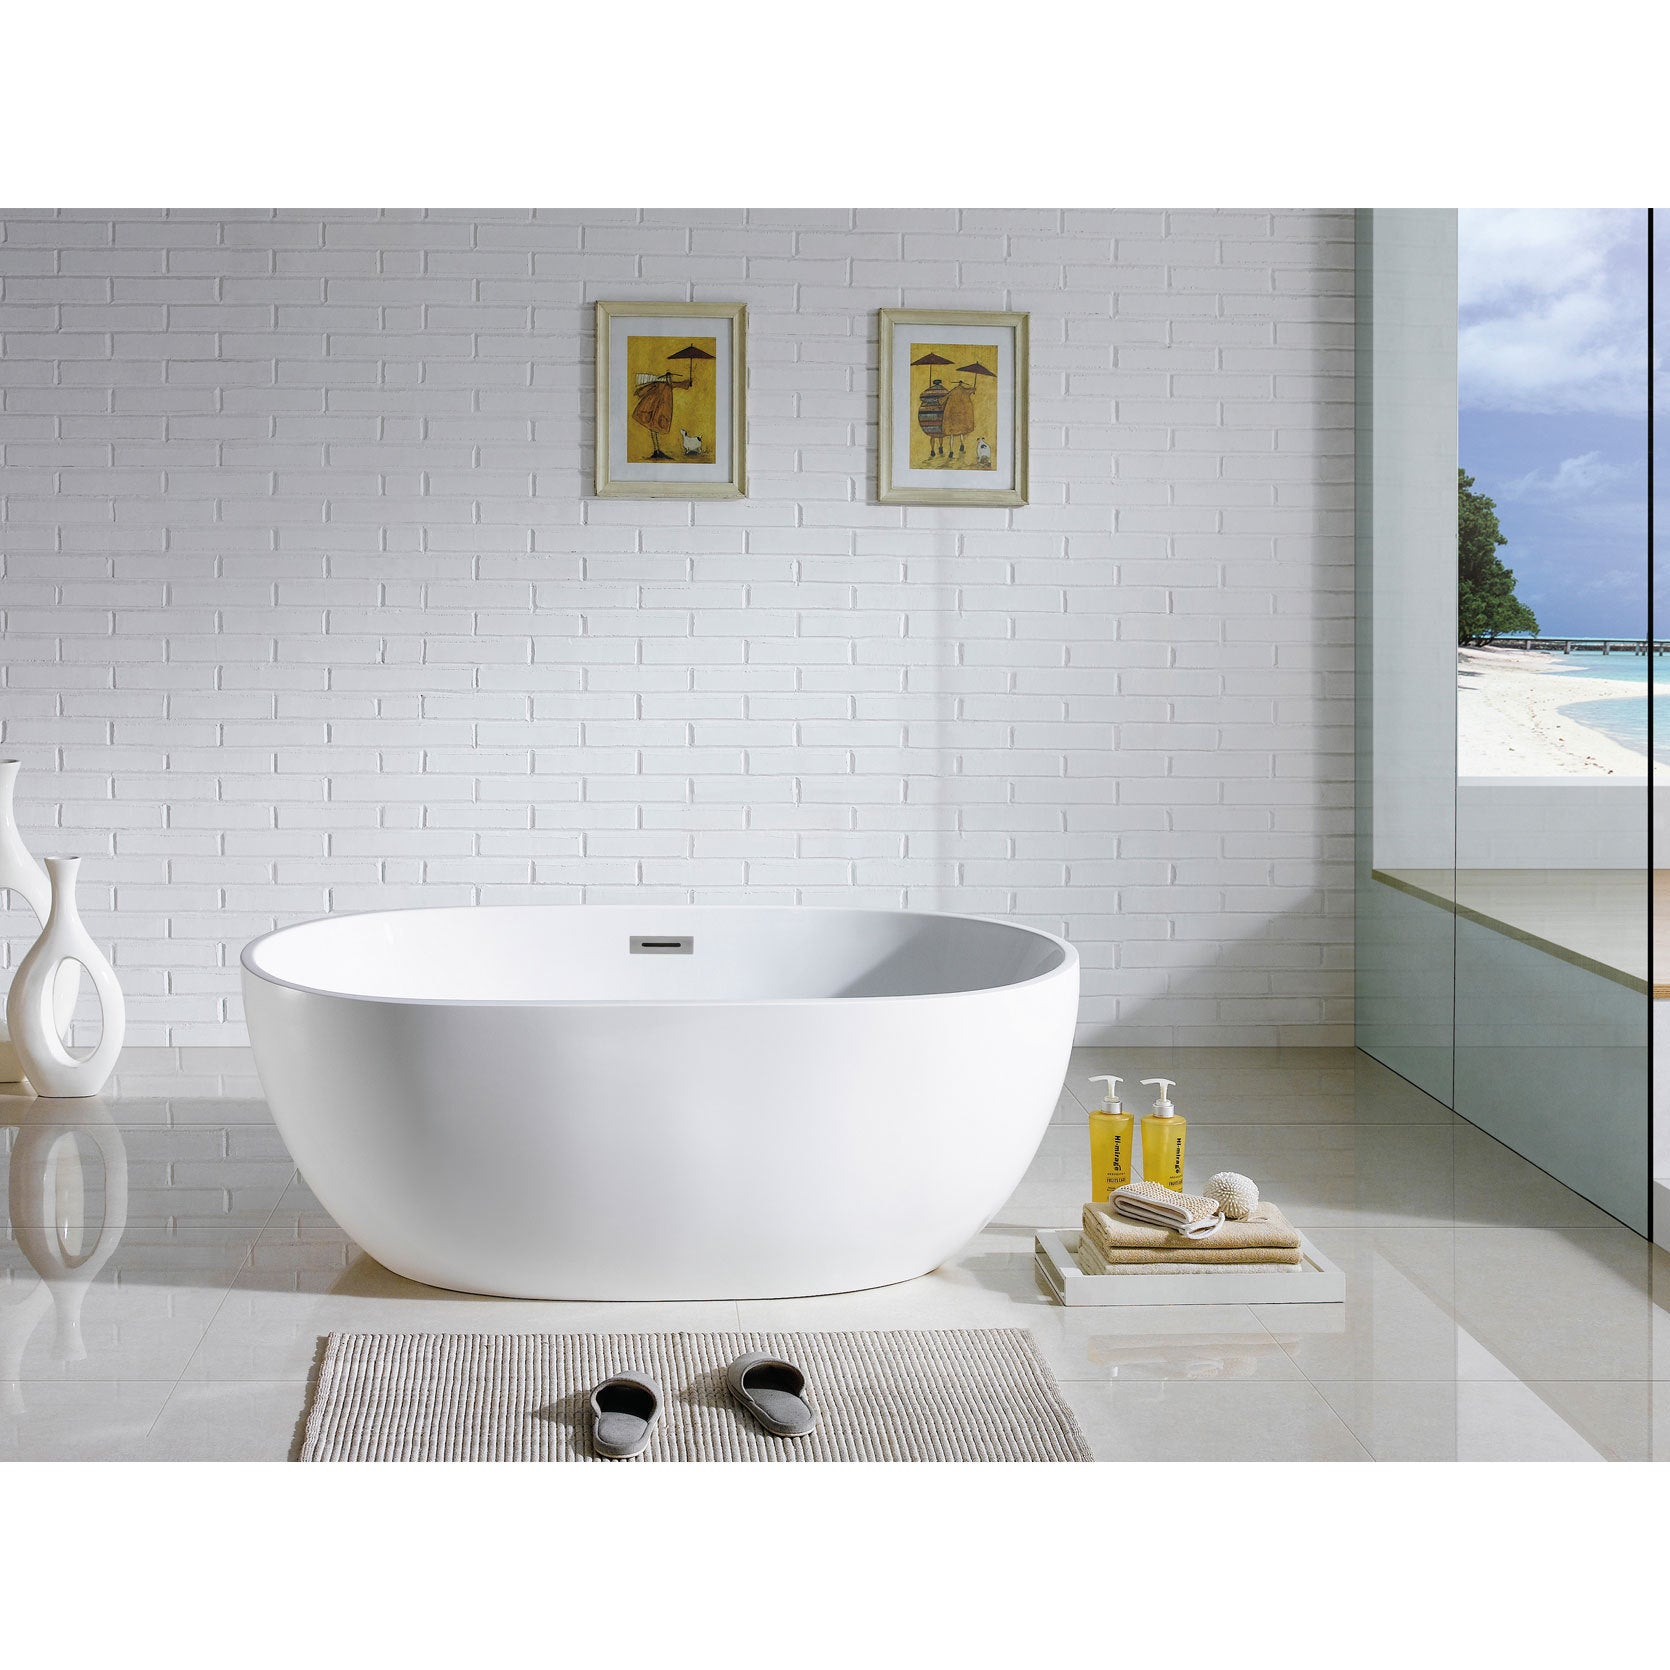 Pacific Collection Tropicana 60-inch x 30-inch White Oval...